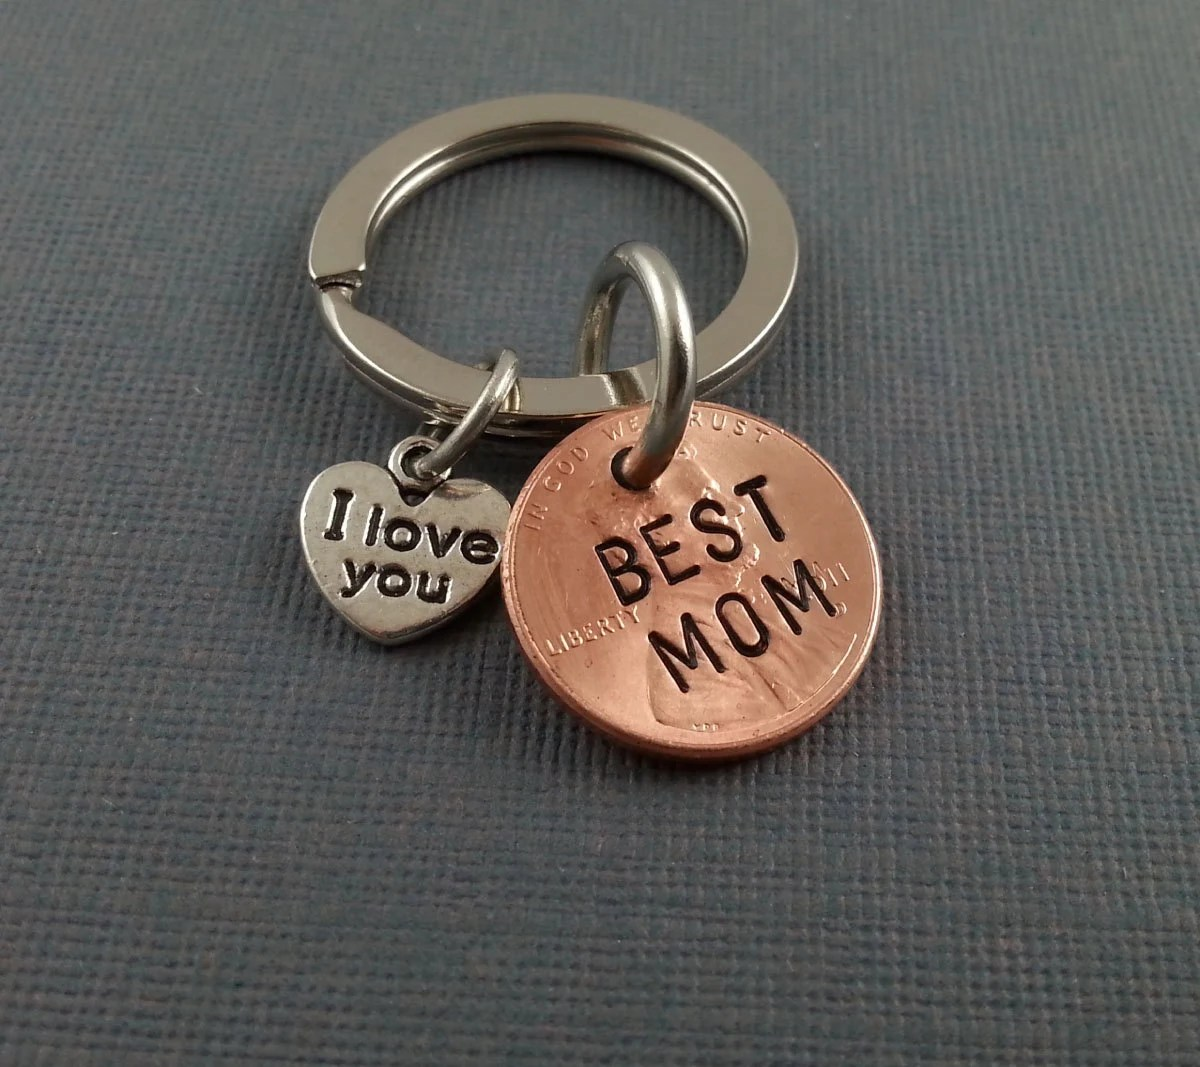 Best Mom Keychain I Love You Charm Personalized Keychain